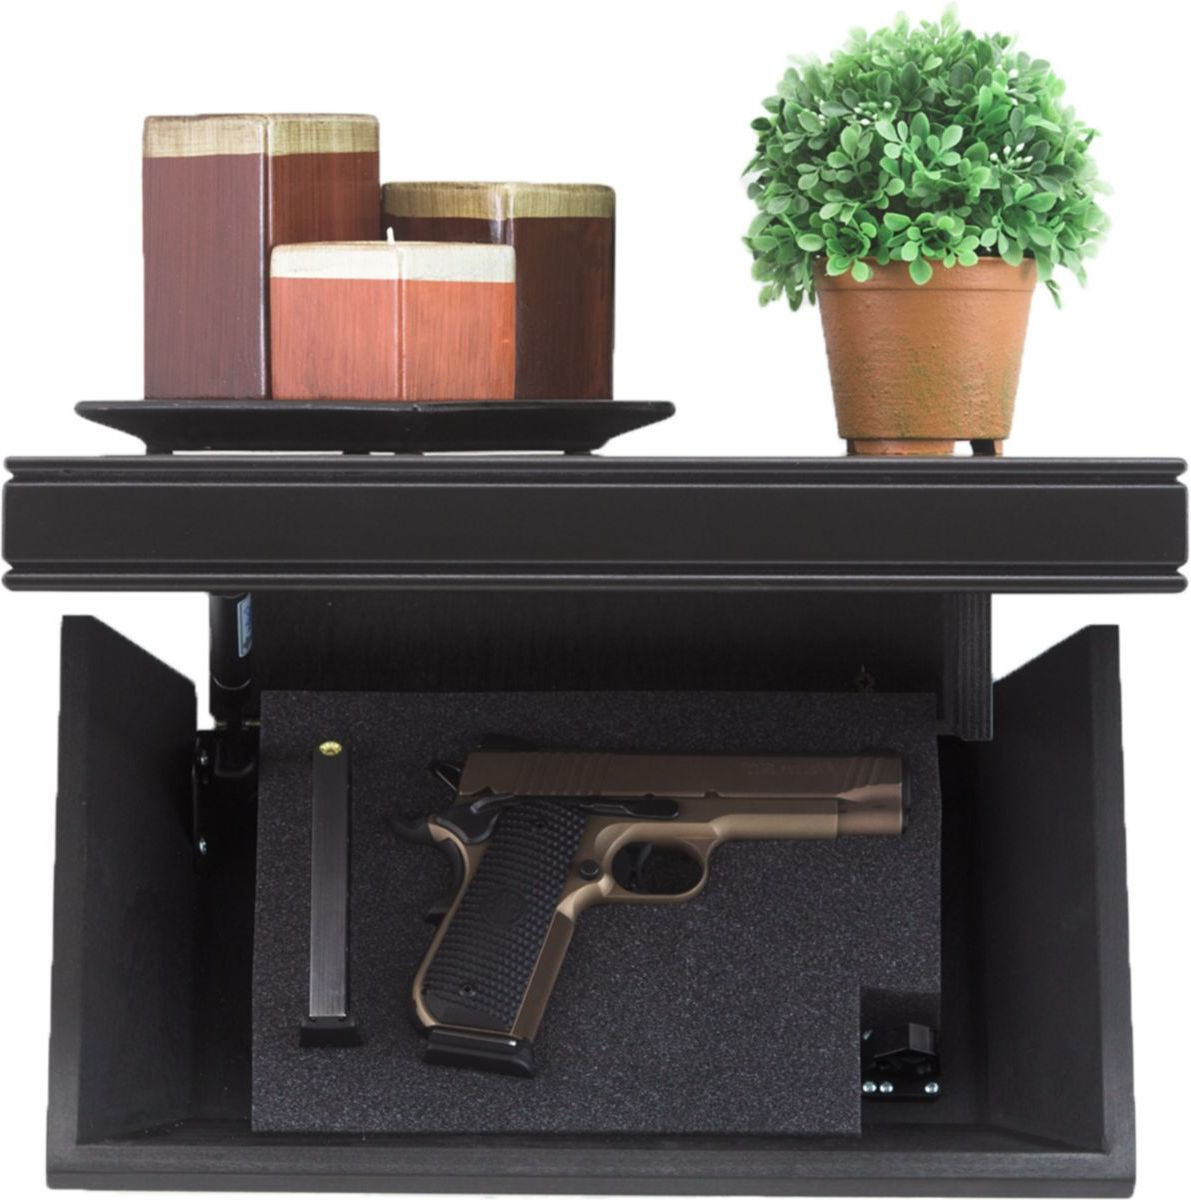 Tactical Walls 812 Pistol-Length Shelf